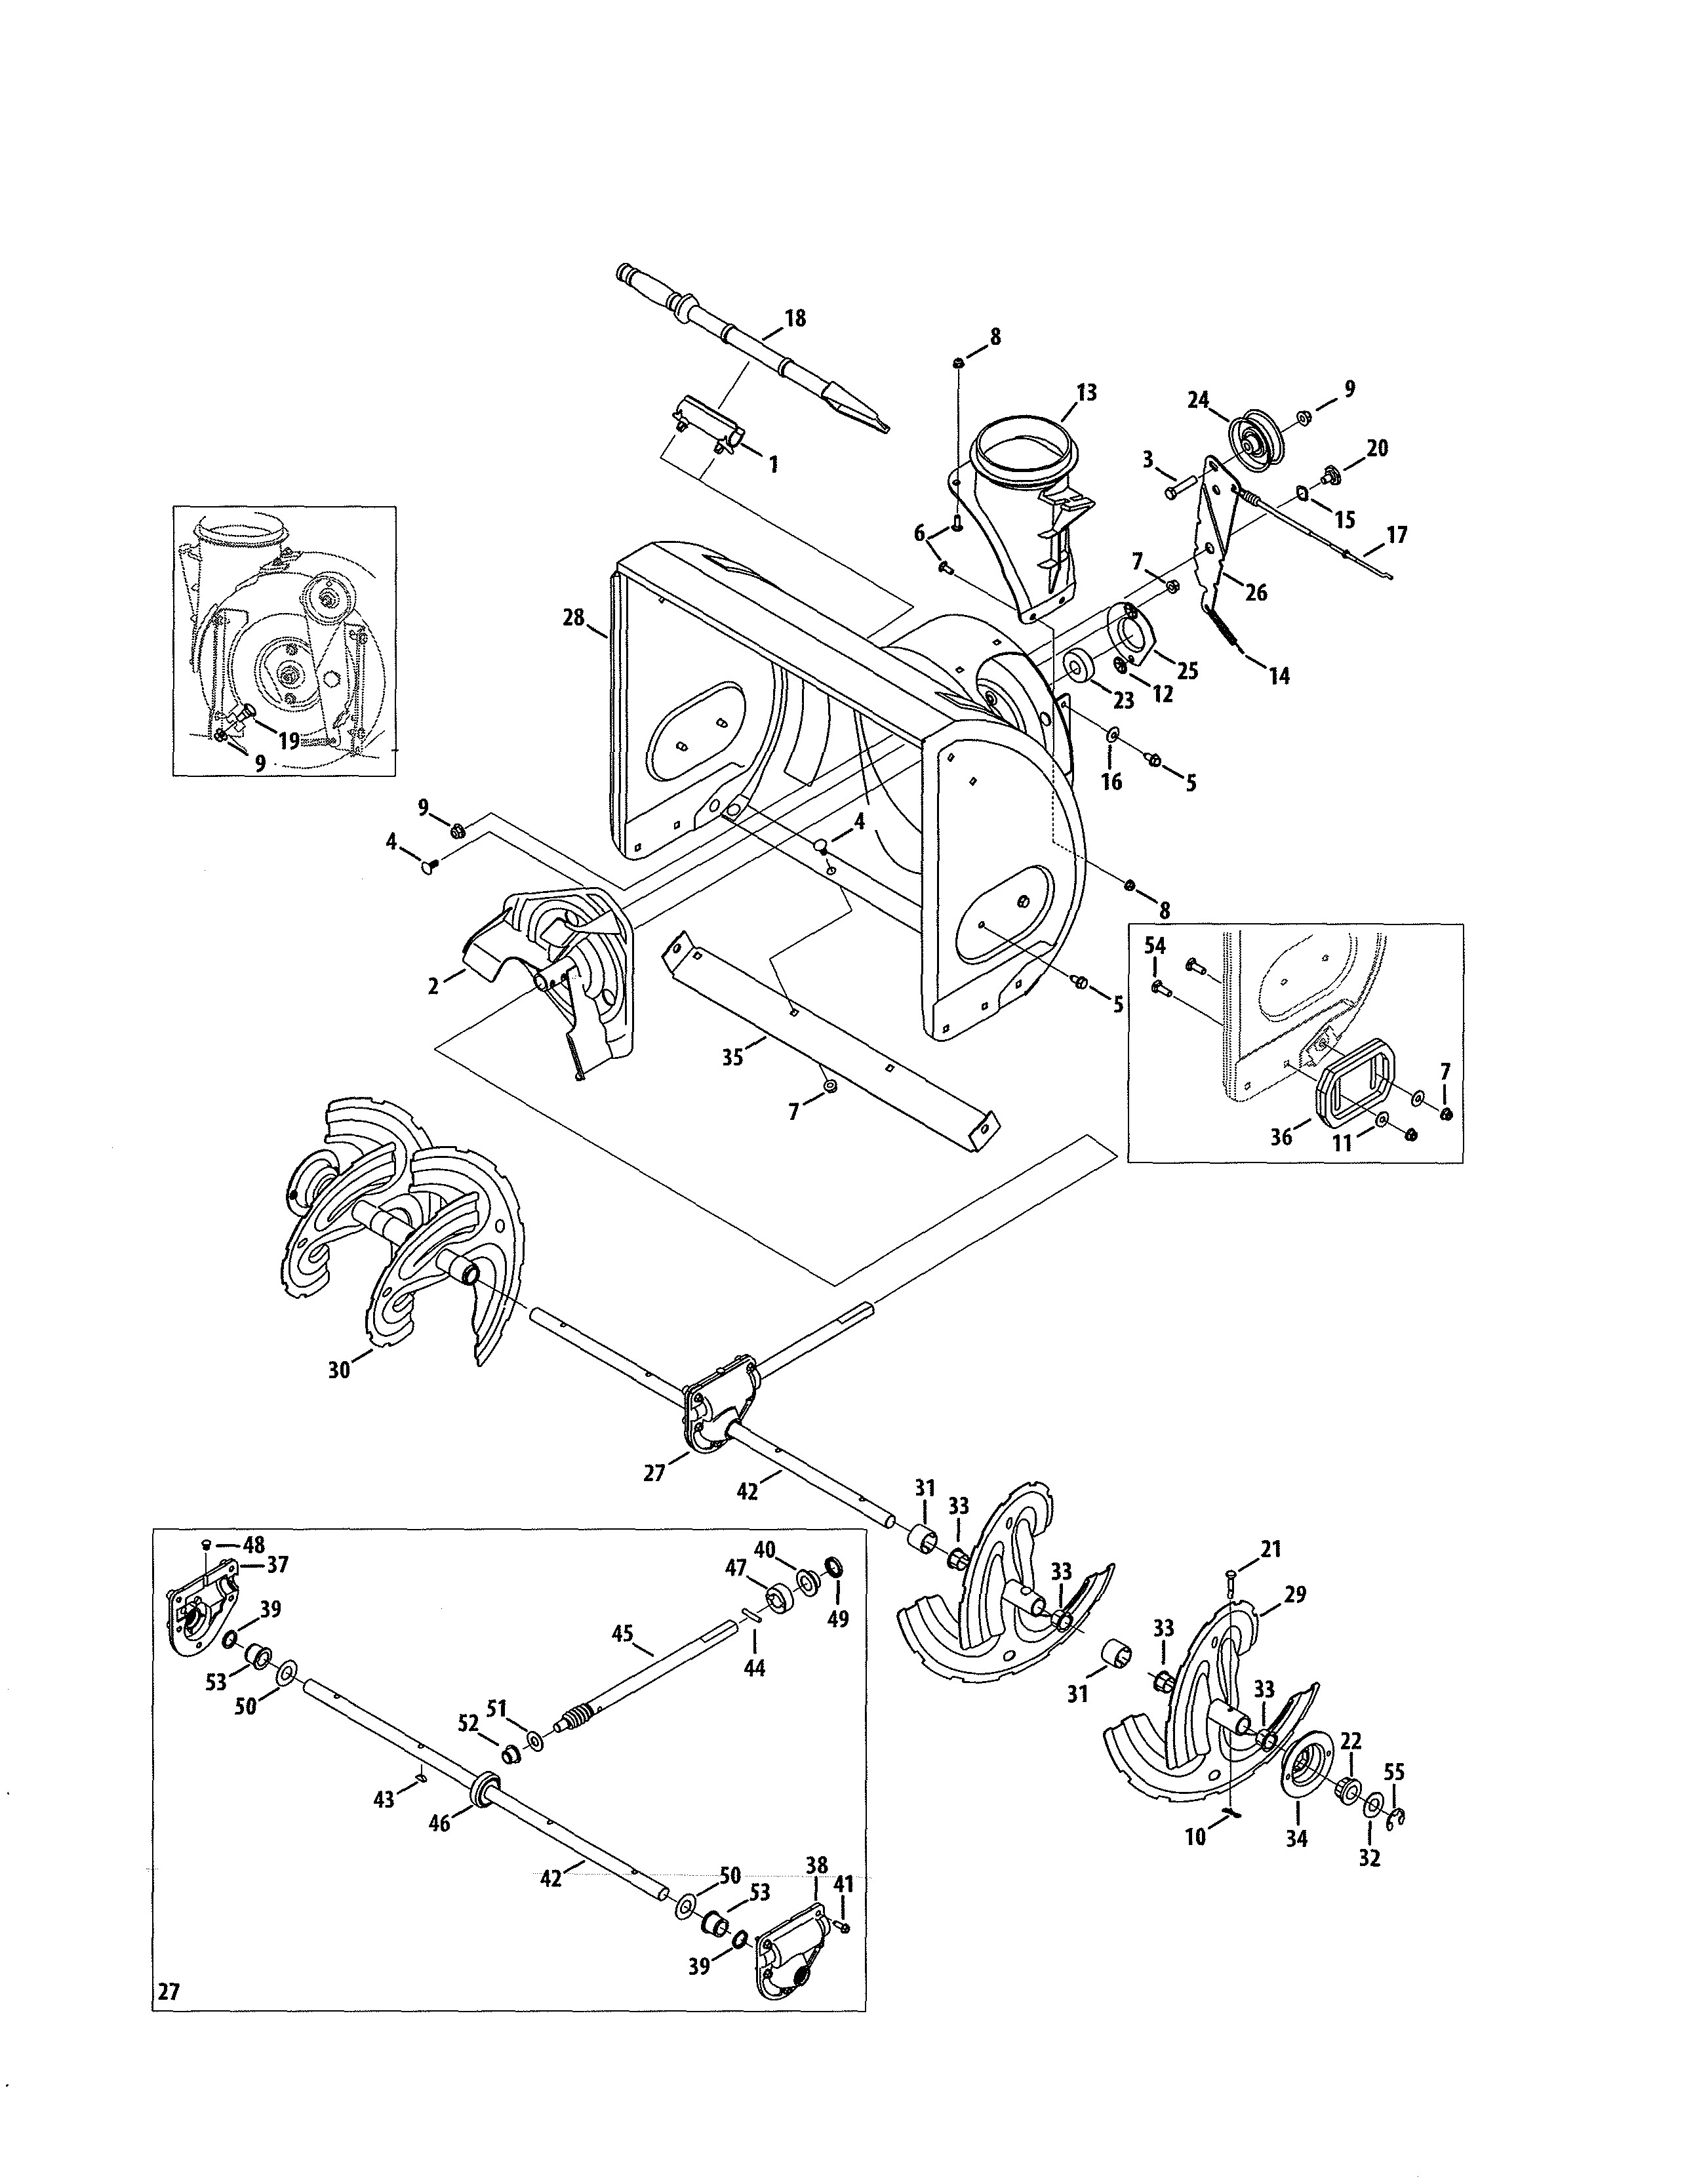 Craftsman Leaf Blower Parts Diagram Get Craftsman Parts and Free Manual for Model 247 Gas Snow